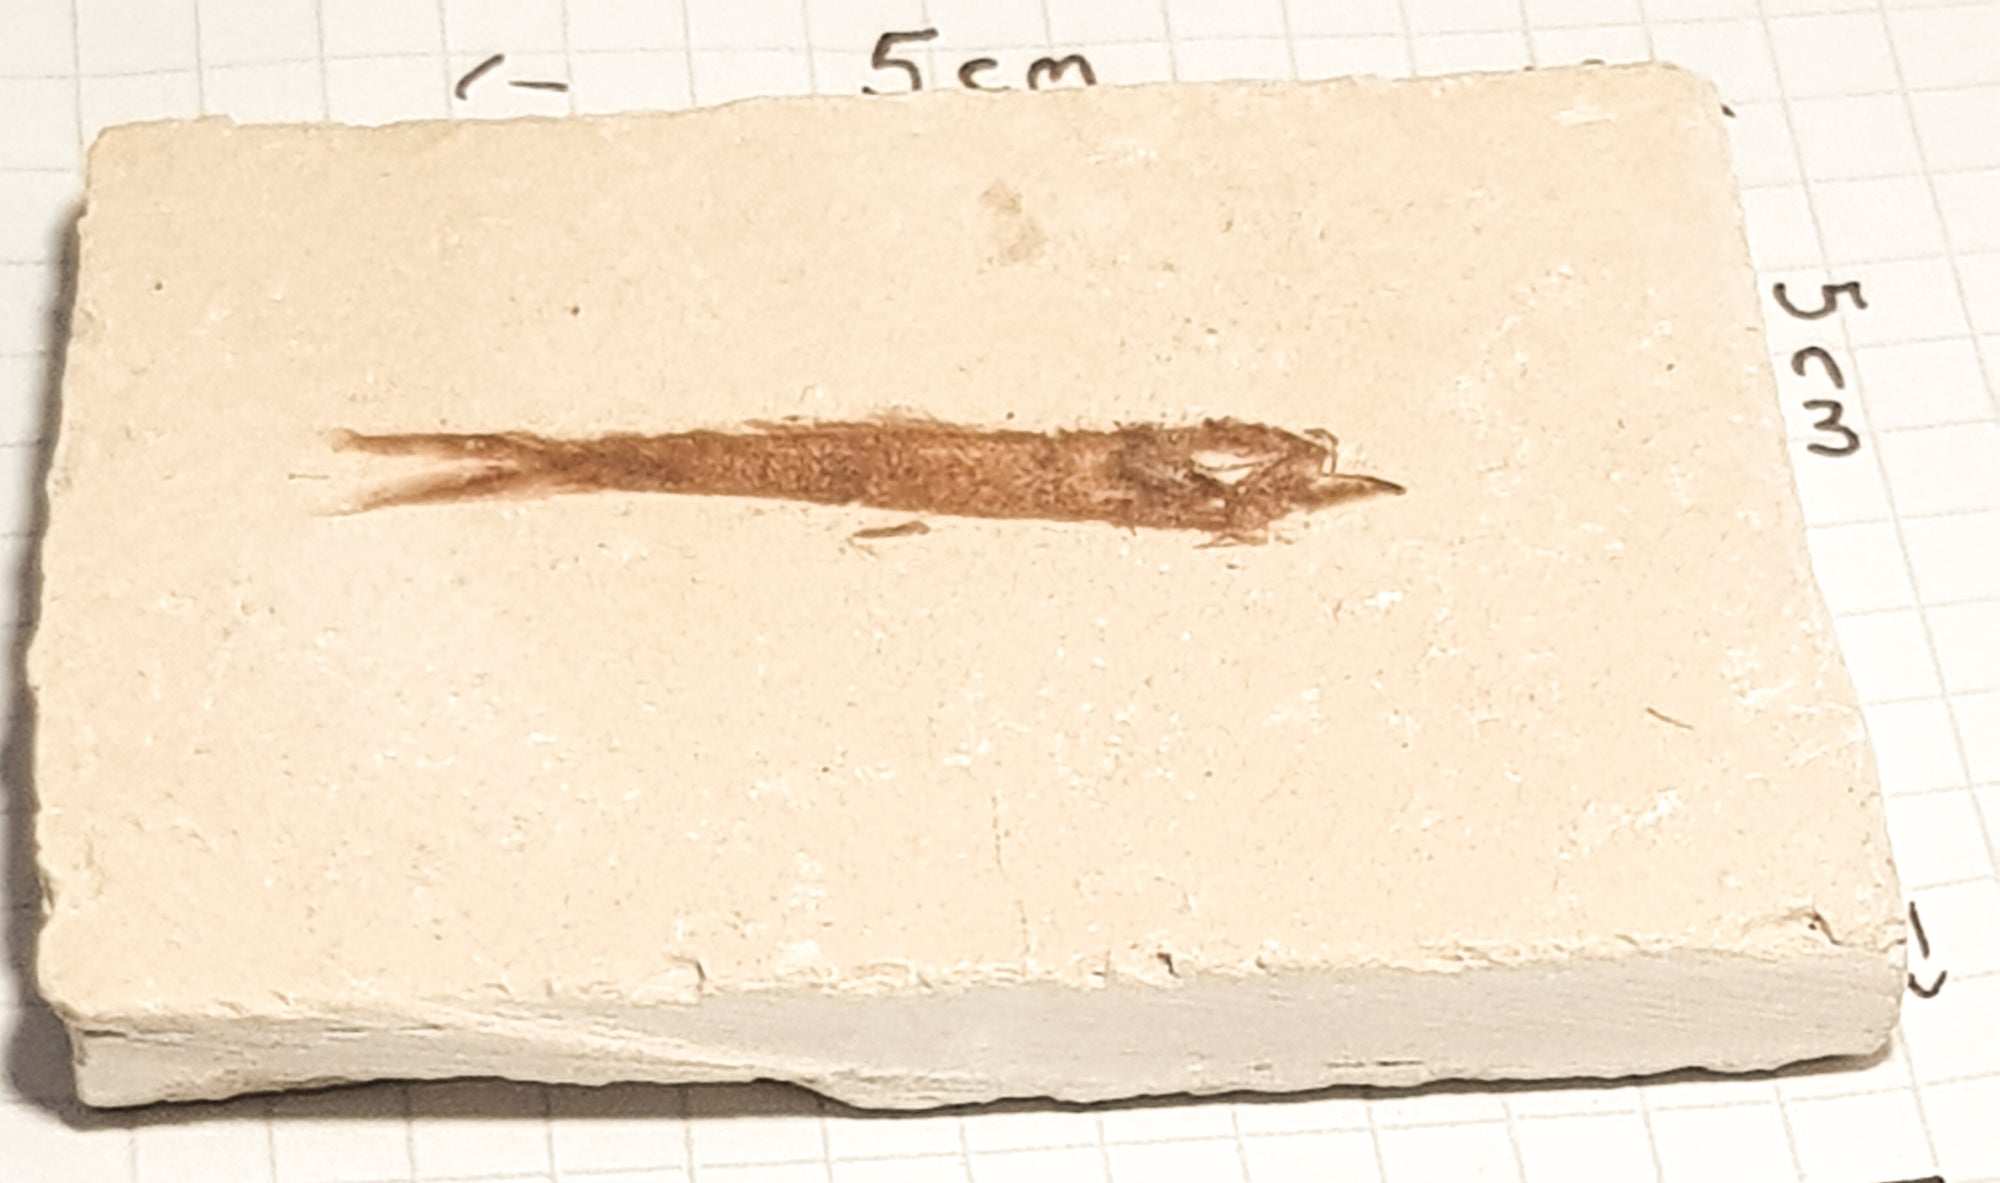 a thin elongated fossil fish stretches across a cream coloured laminated limestone. The fish is placed on square paper to indicate scale. it is roughly 6cm x 5cm